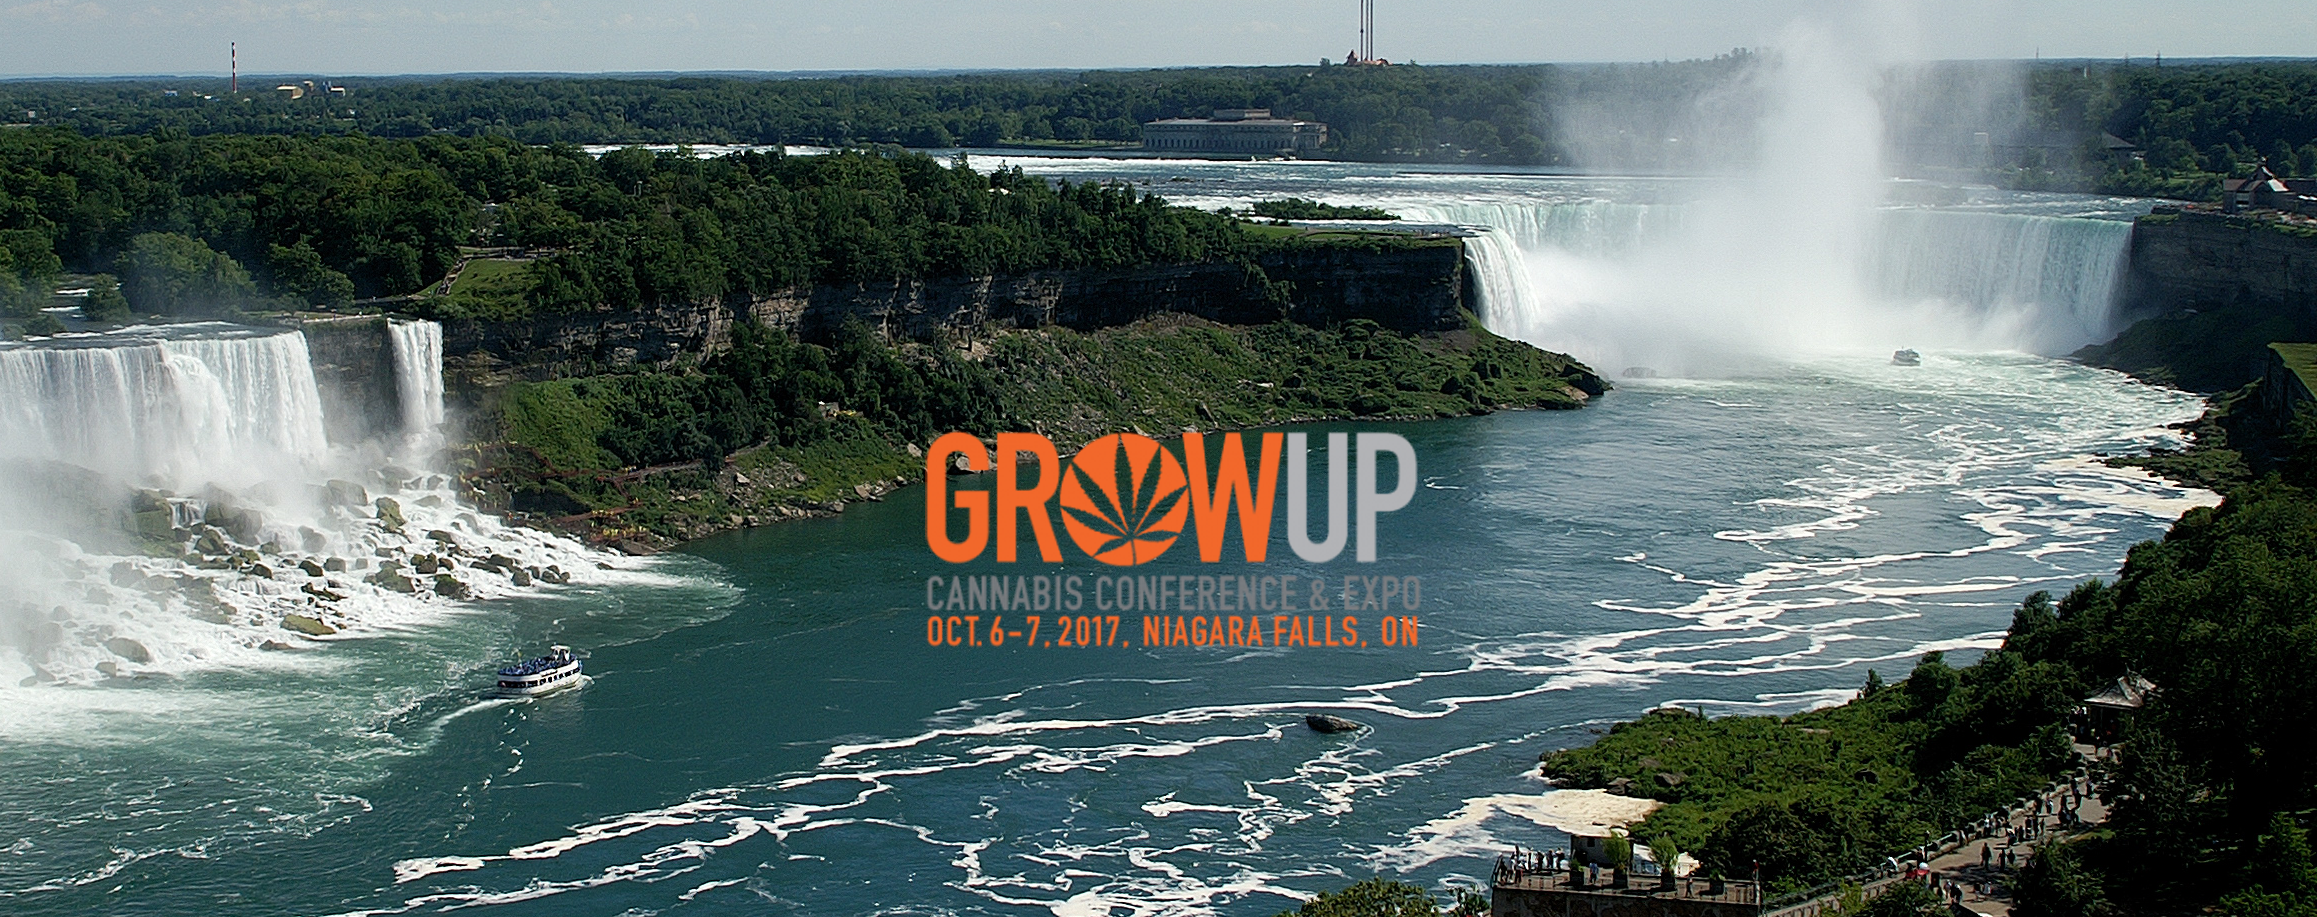 Grow Up Cannabis Conference & Expo, Niagara Falls 2017